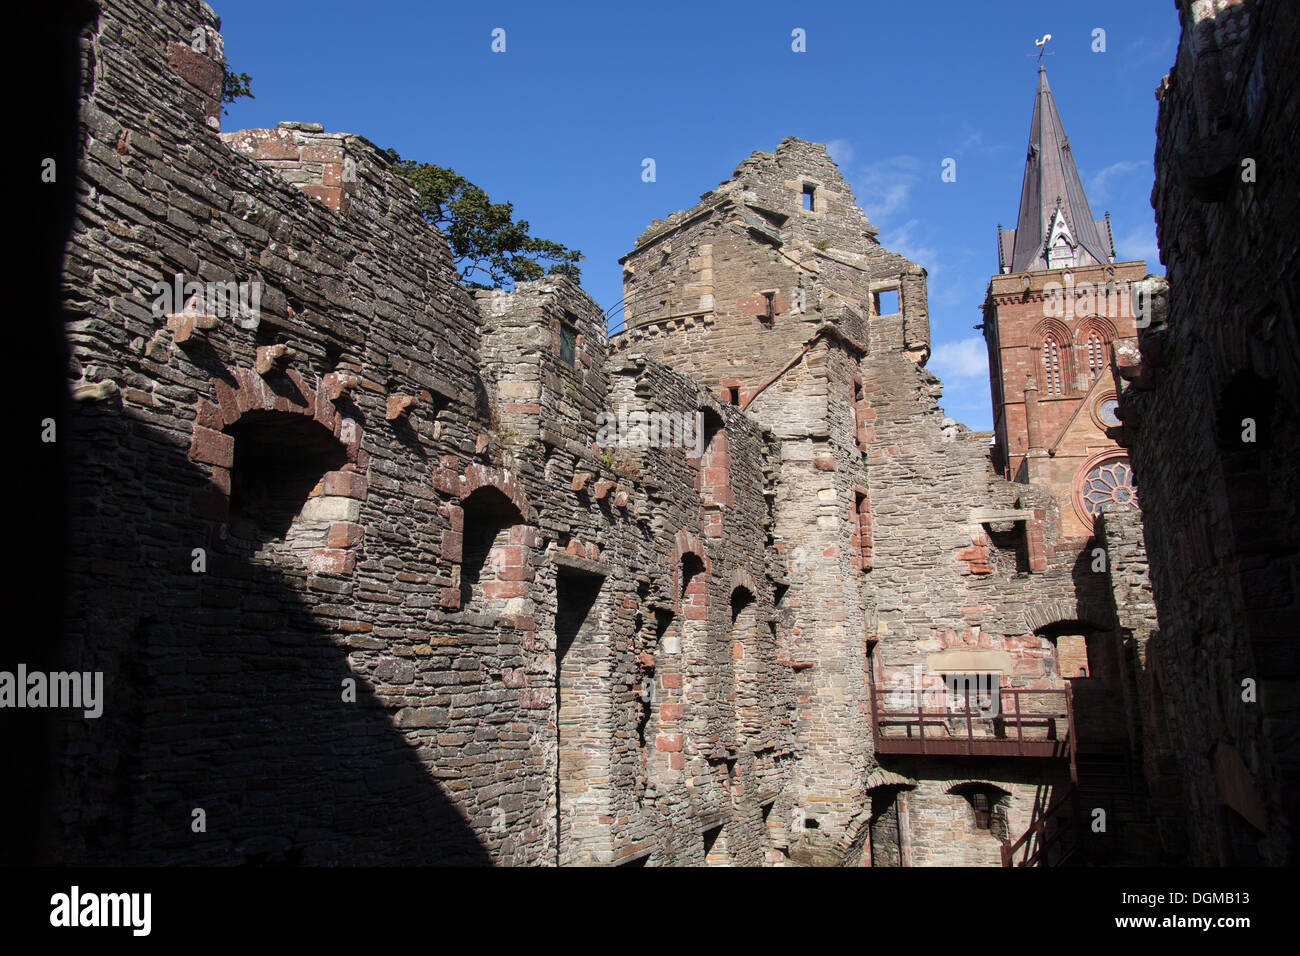 Islands of Orkney, Scotland. Kirkwall's Bishops Palace, with the spire of St Magnus Cathedral in the background. Stock Photo